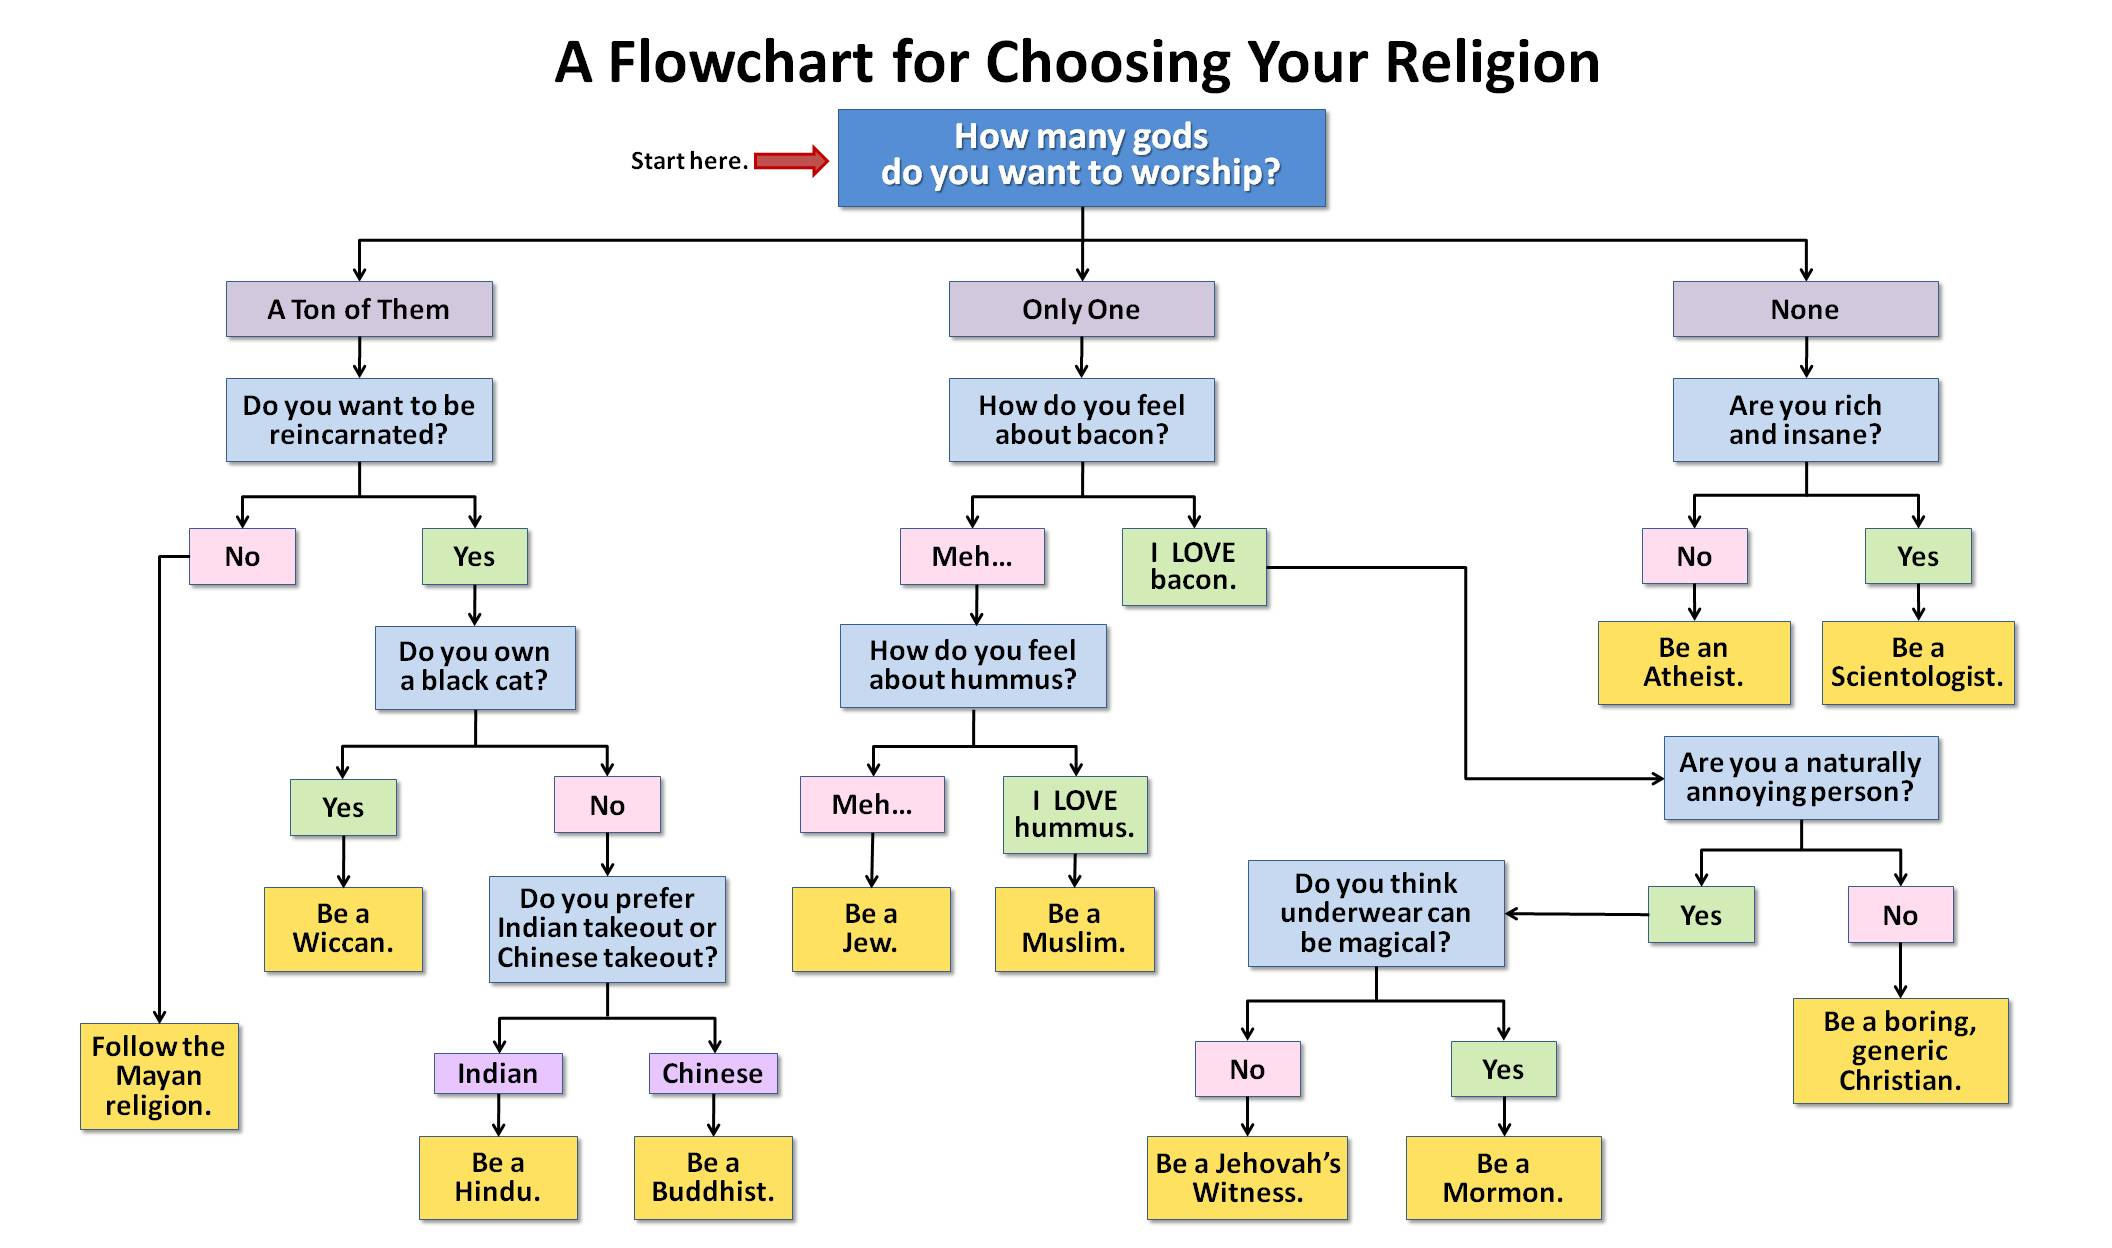 Religion Chosing Flow Chart Createdebate